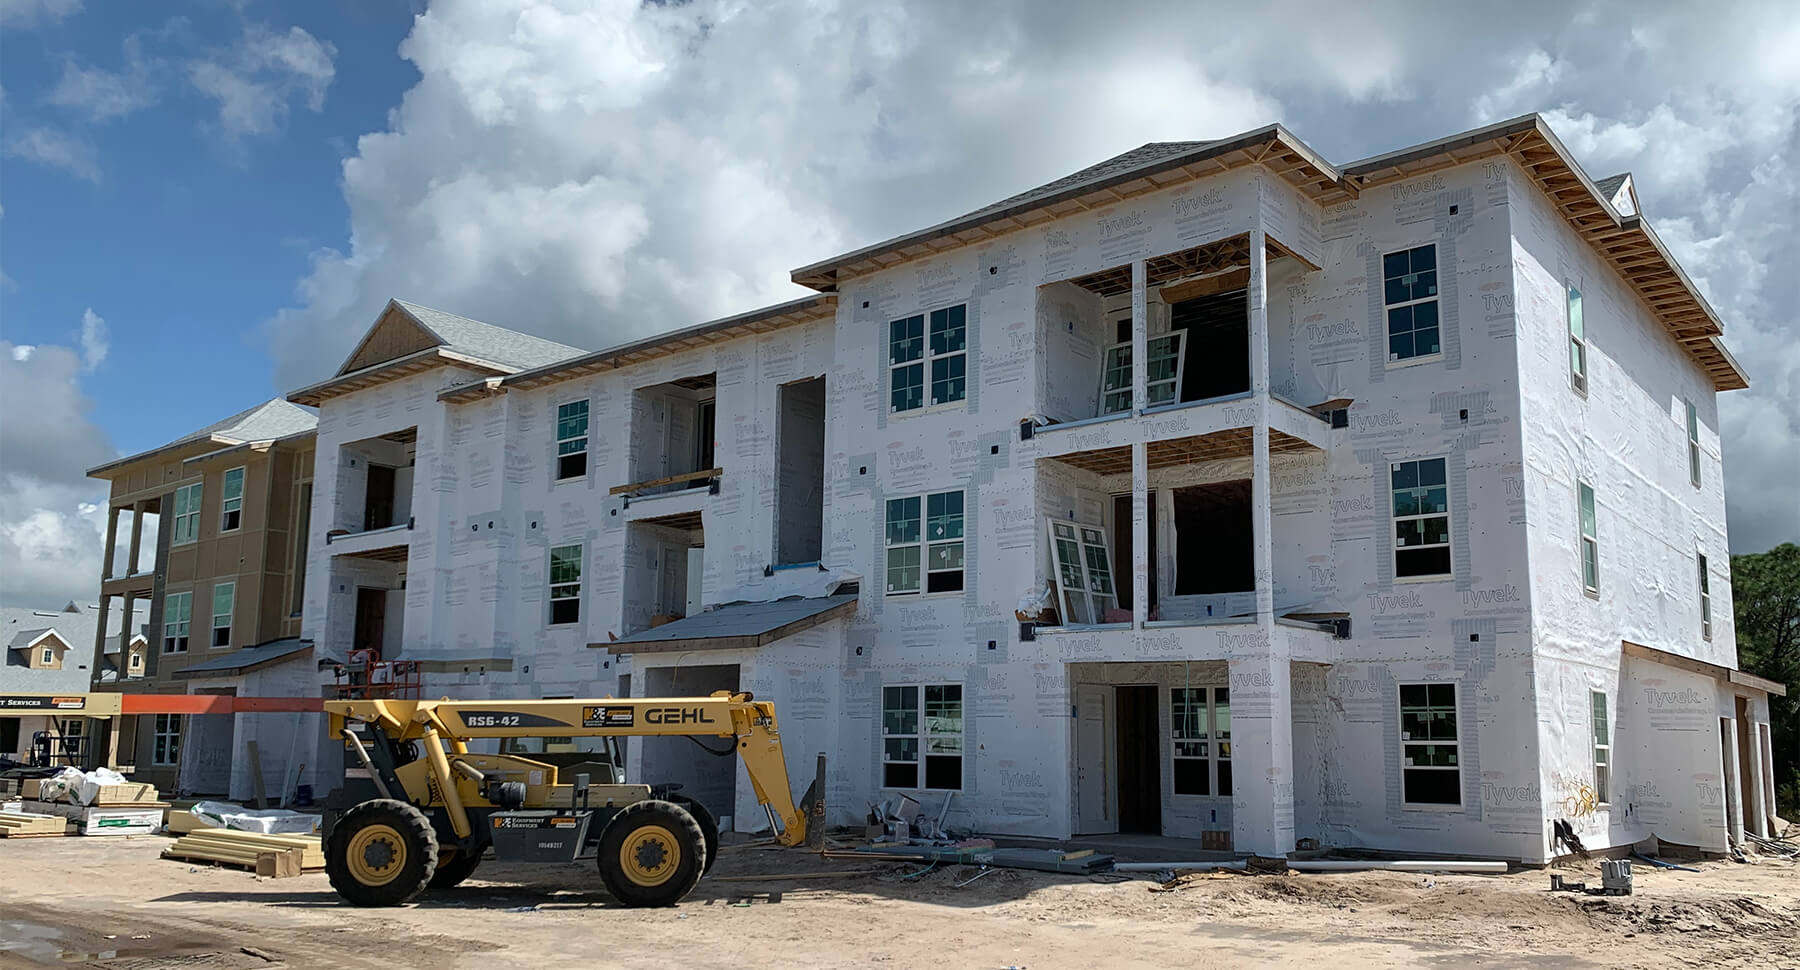 New construction multifamily housing with construction equipment